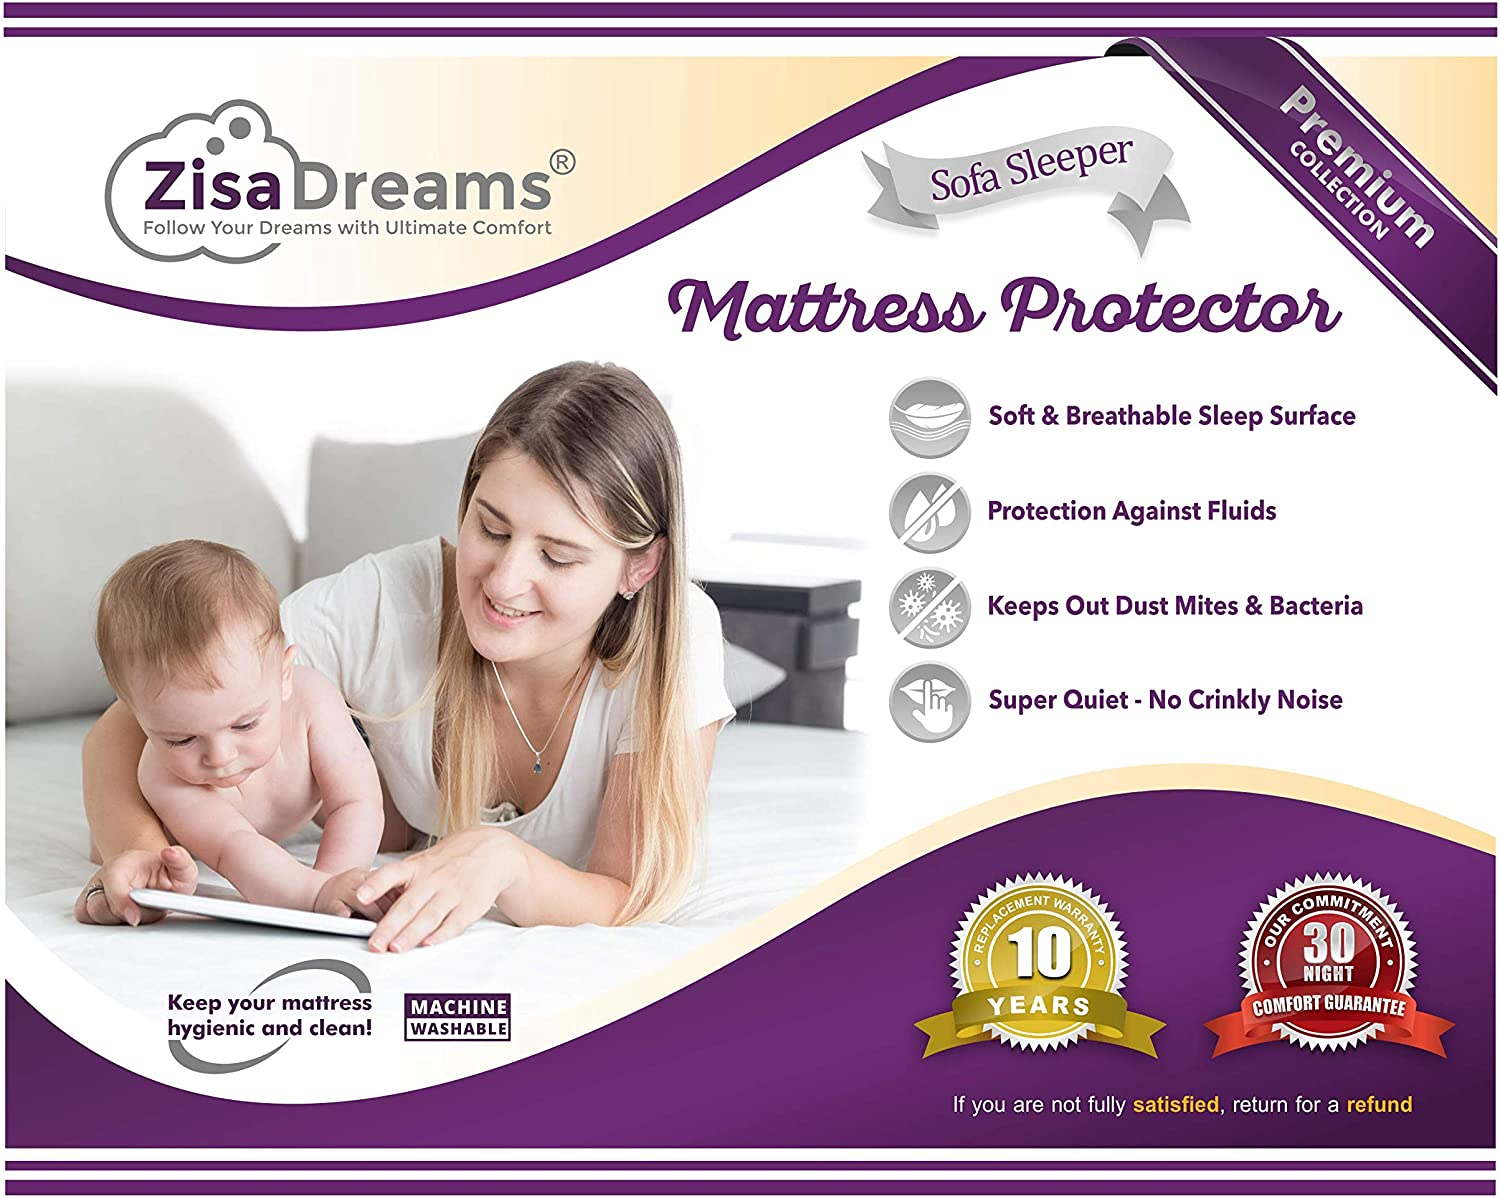 "Zisa Dreams - Mattress & Sofa Bed Sleeper Protector | Total Safety from Spillage & Dust Mite, Hypoallergenic, Waterproof, Premium 100% Jersey Cotton Top, Queen Size (60x80), 6"" Depth, White"